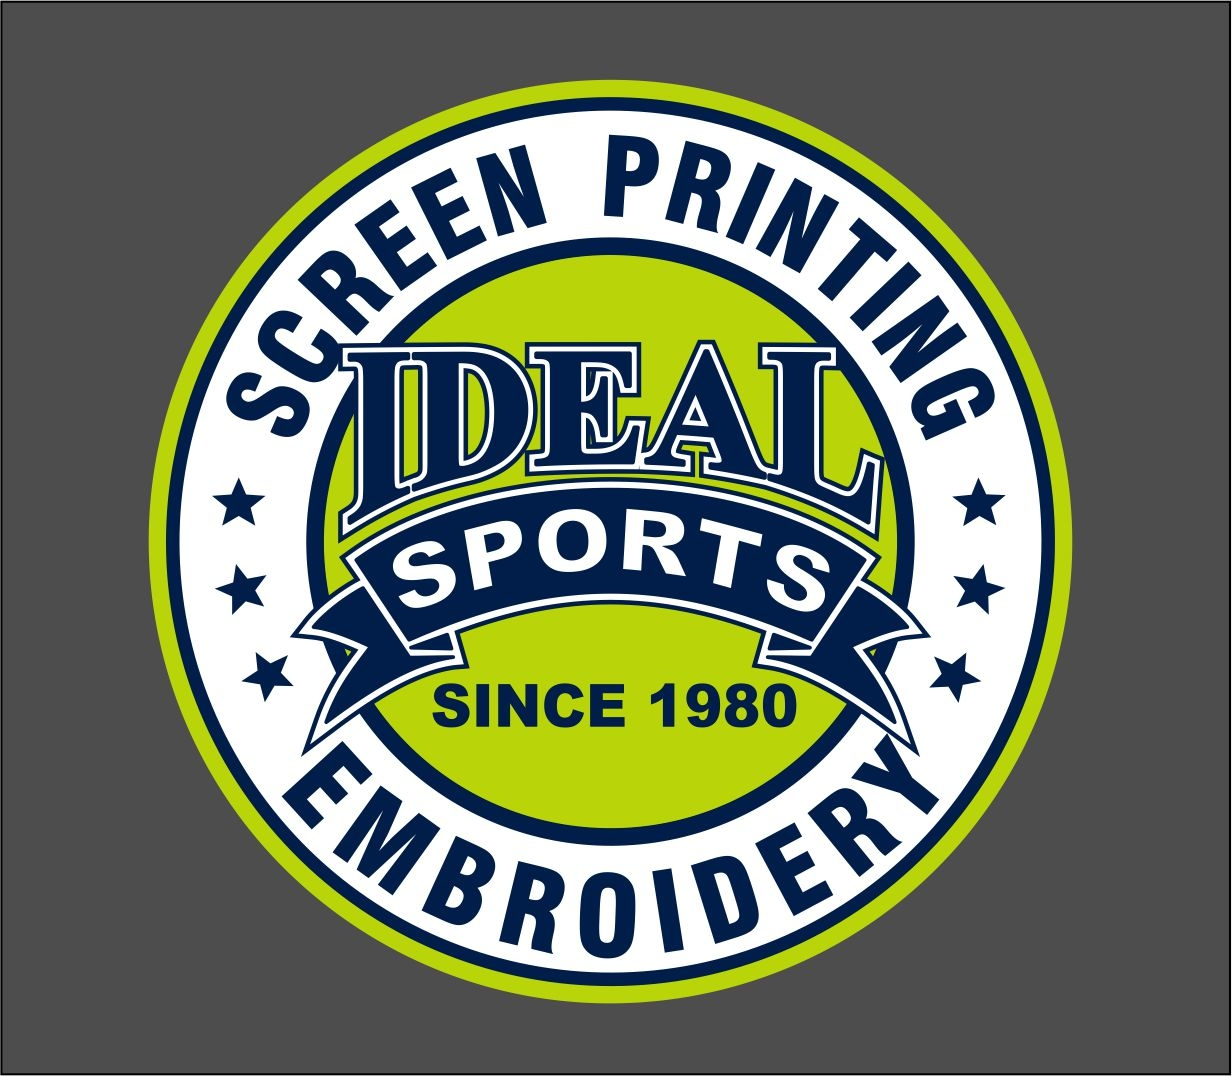 Ideal Sports image 1